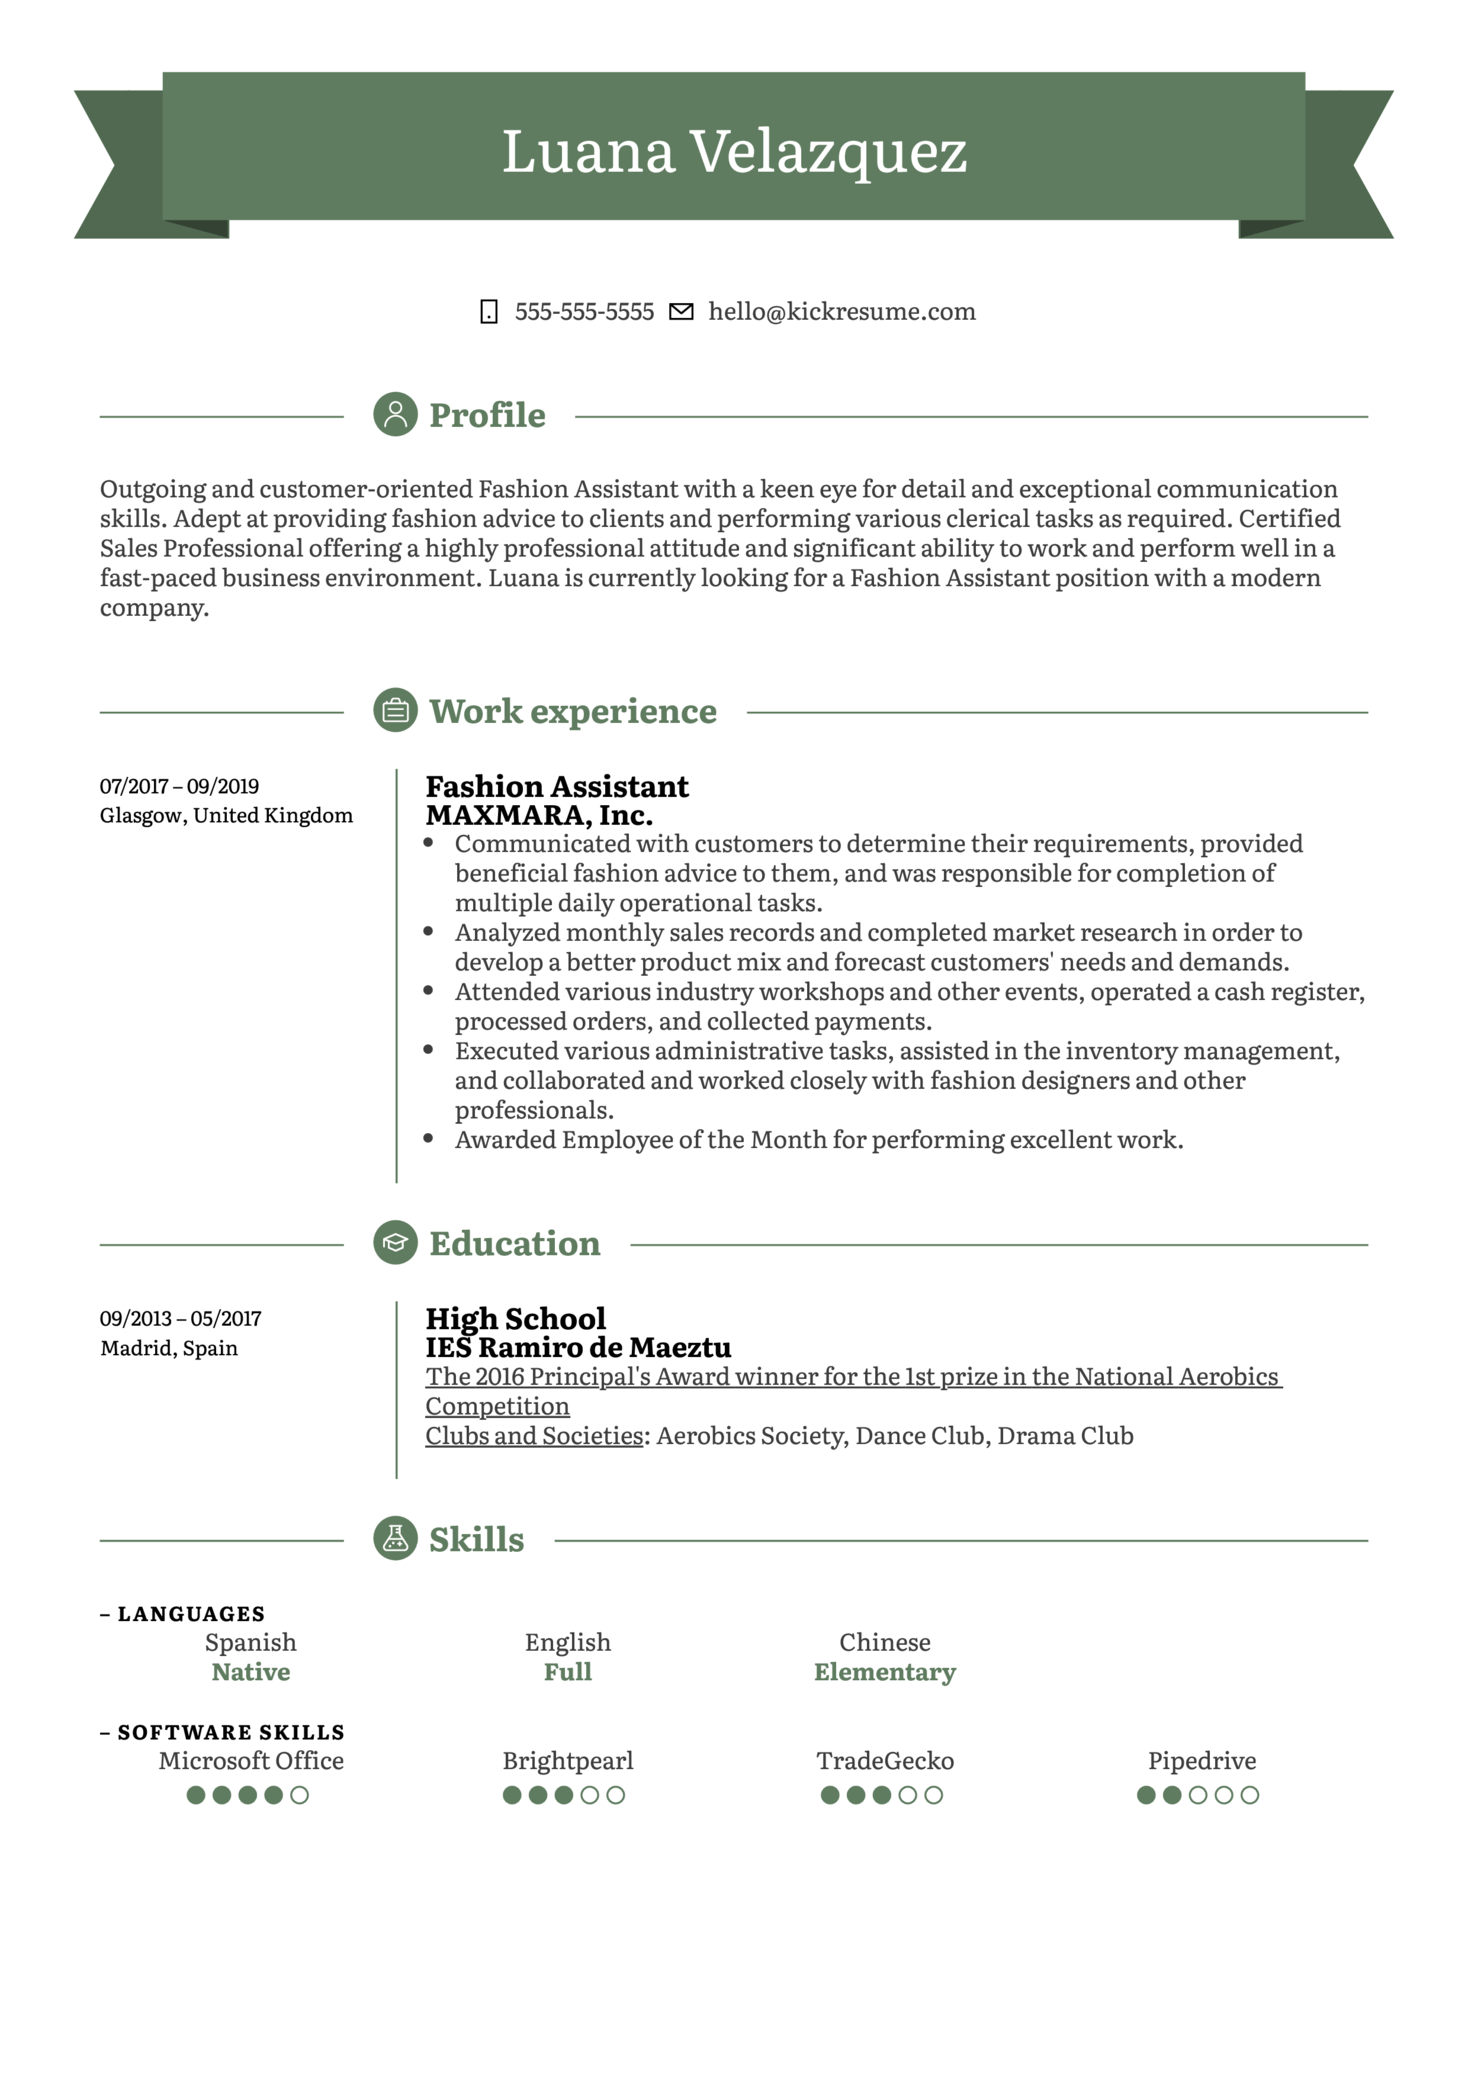 Fashion Assistant Resume Example (Part 1)